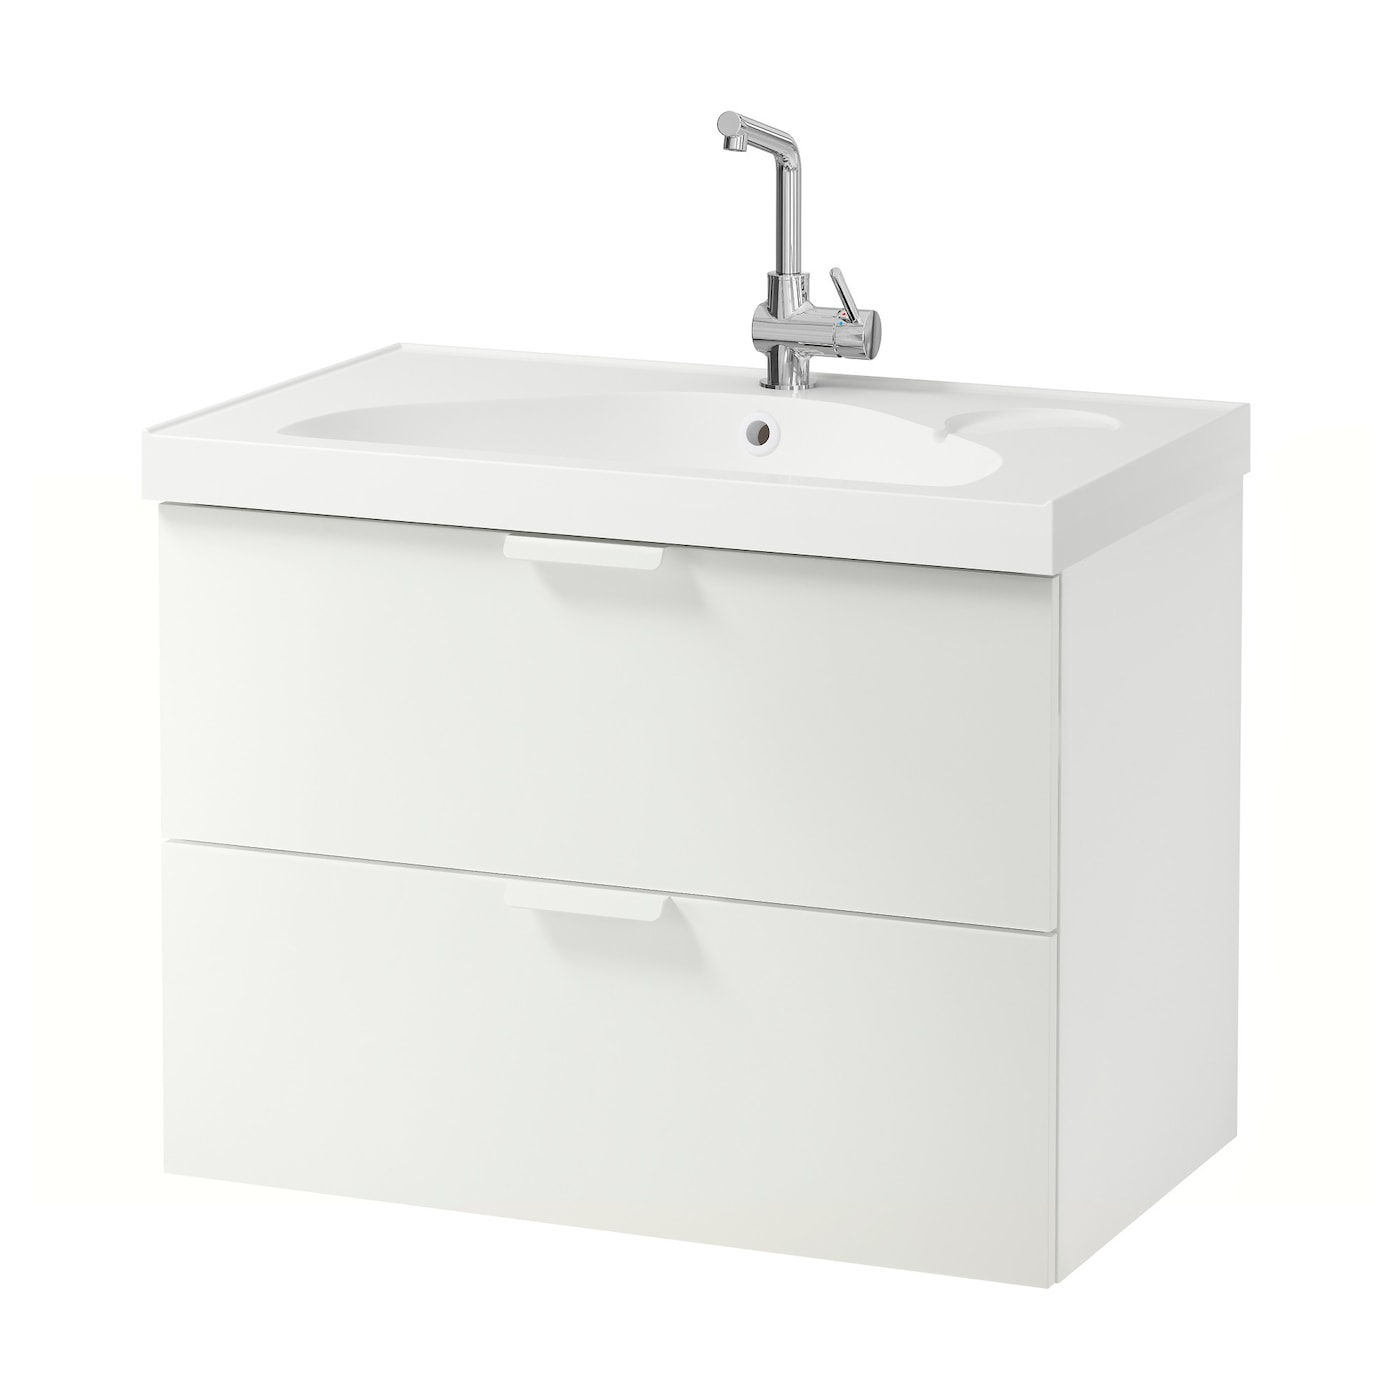 bathroom sink units ikea bathroom vanity units ikea ireland dublin 16596